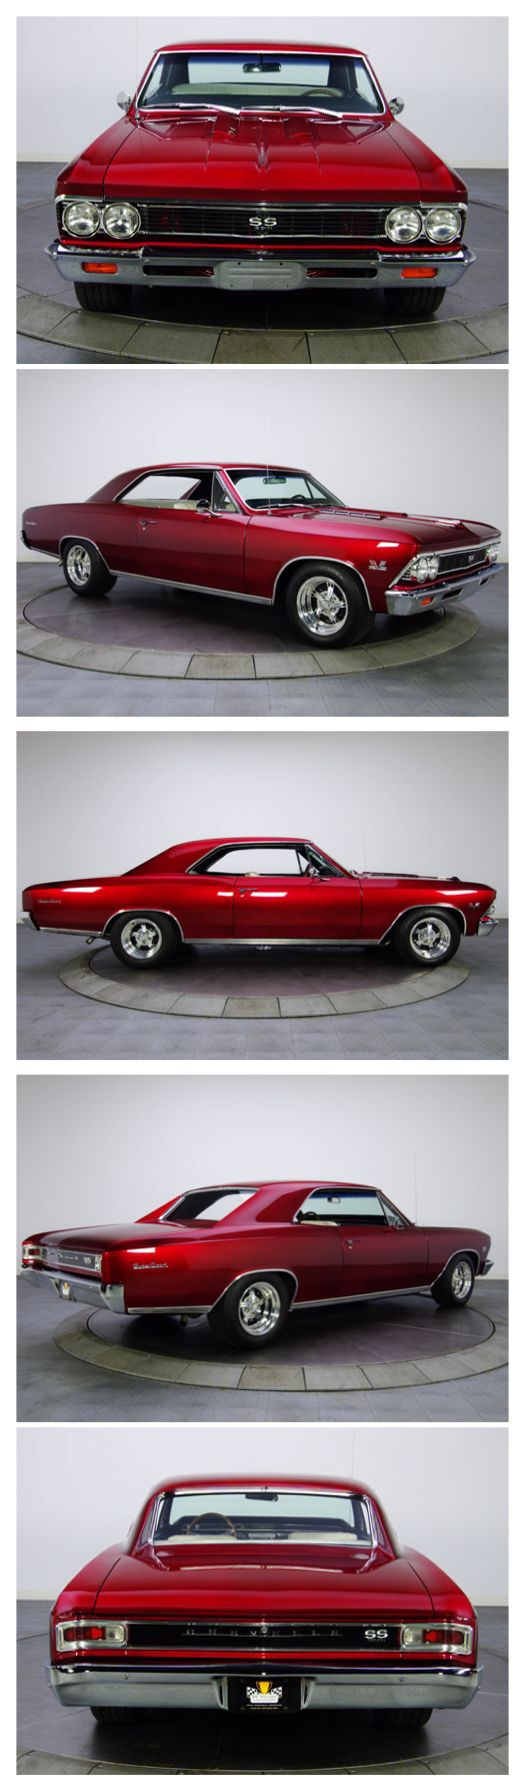 1966 Chevy Chevelle SS...Brought to you by House of Insurance in #Eugene, #Oregon. Save on #insurance in Eugene